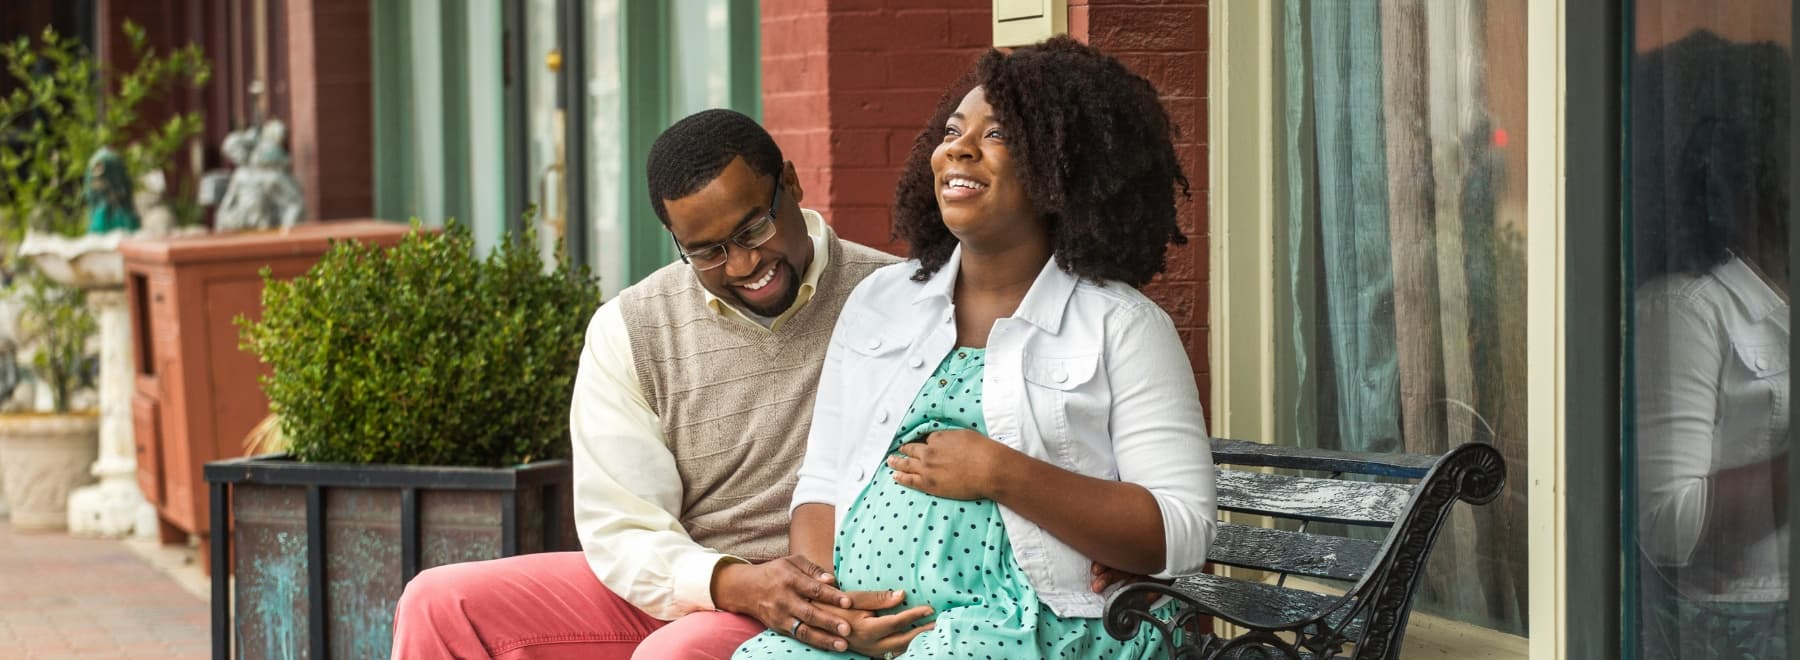 Smiling man puts hand on pregnant woman's stomach while sitting on a bench